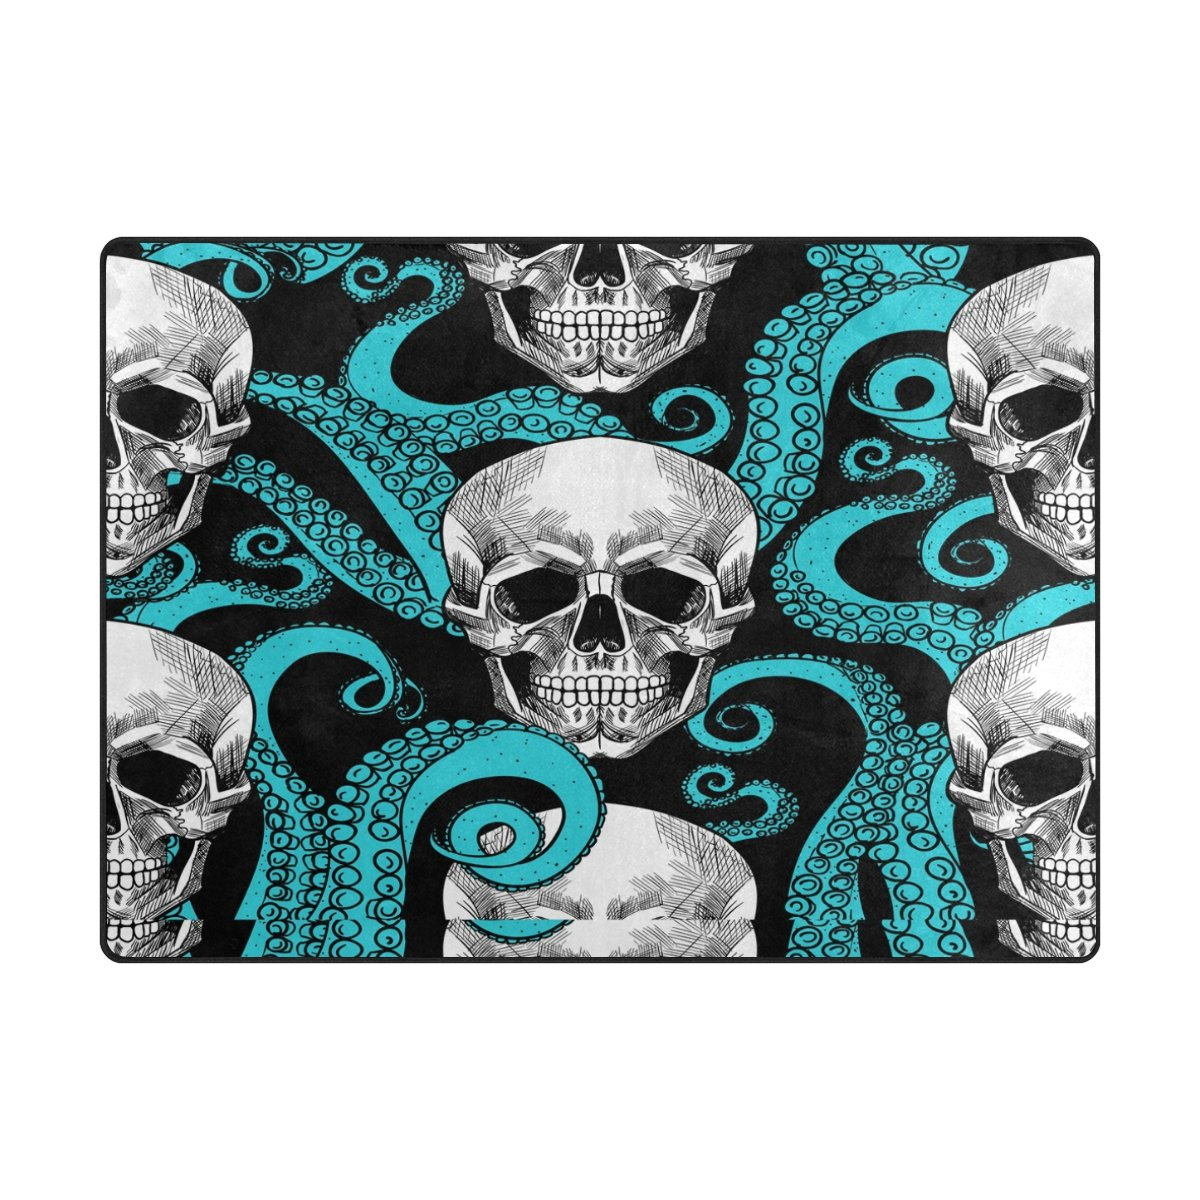 Amazon.com : ALAZA Blue Octopus Kraken Sugar Skull Area Rug Rugs for ...